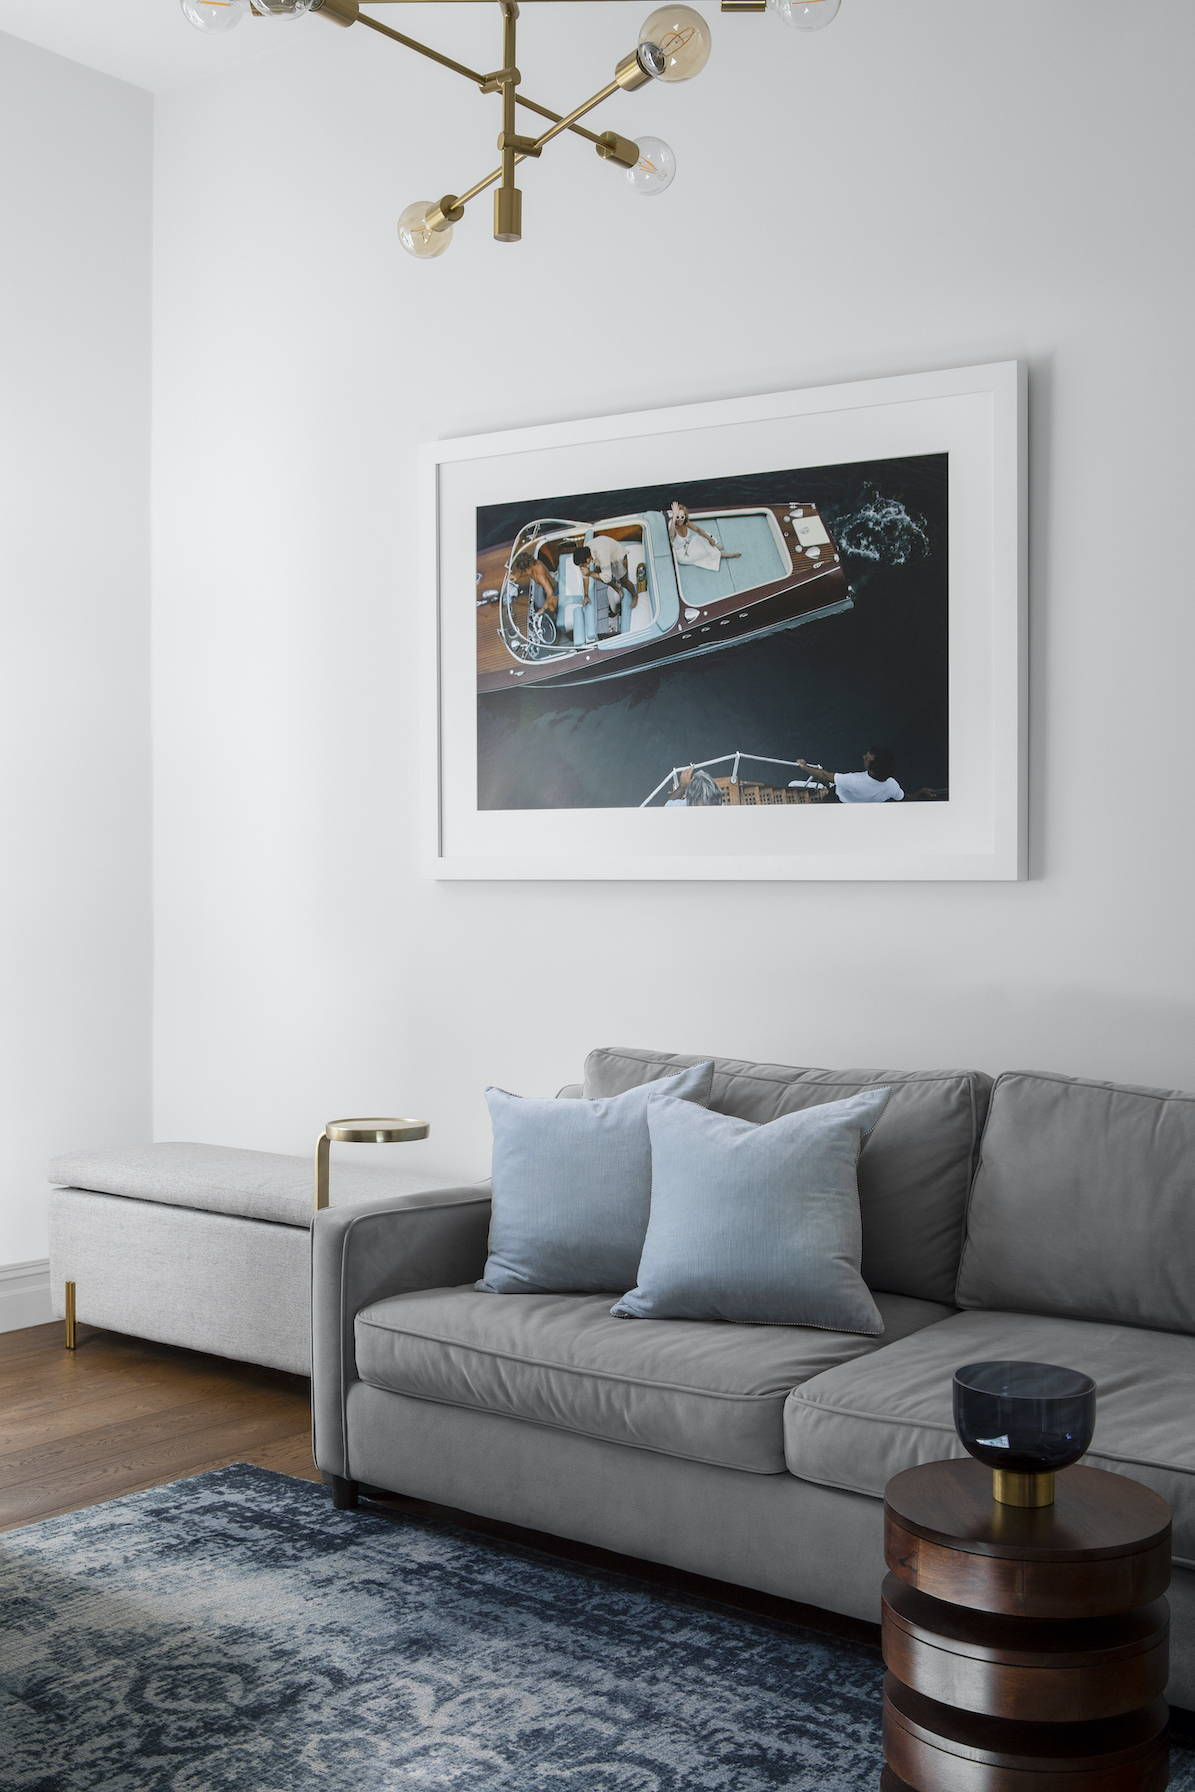 A living room with framed photography above sofa